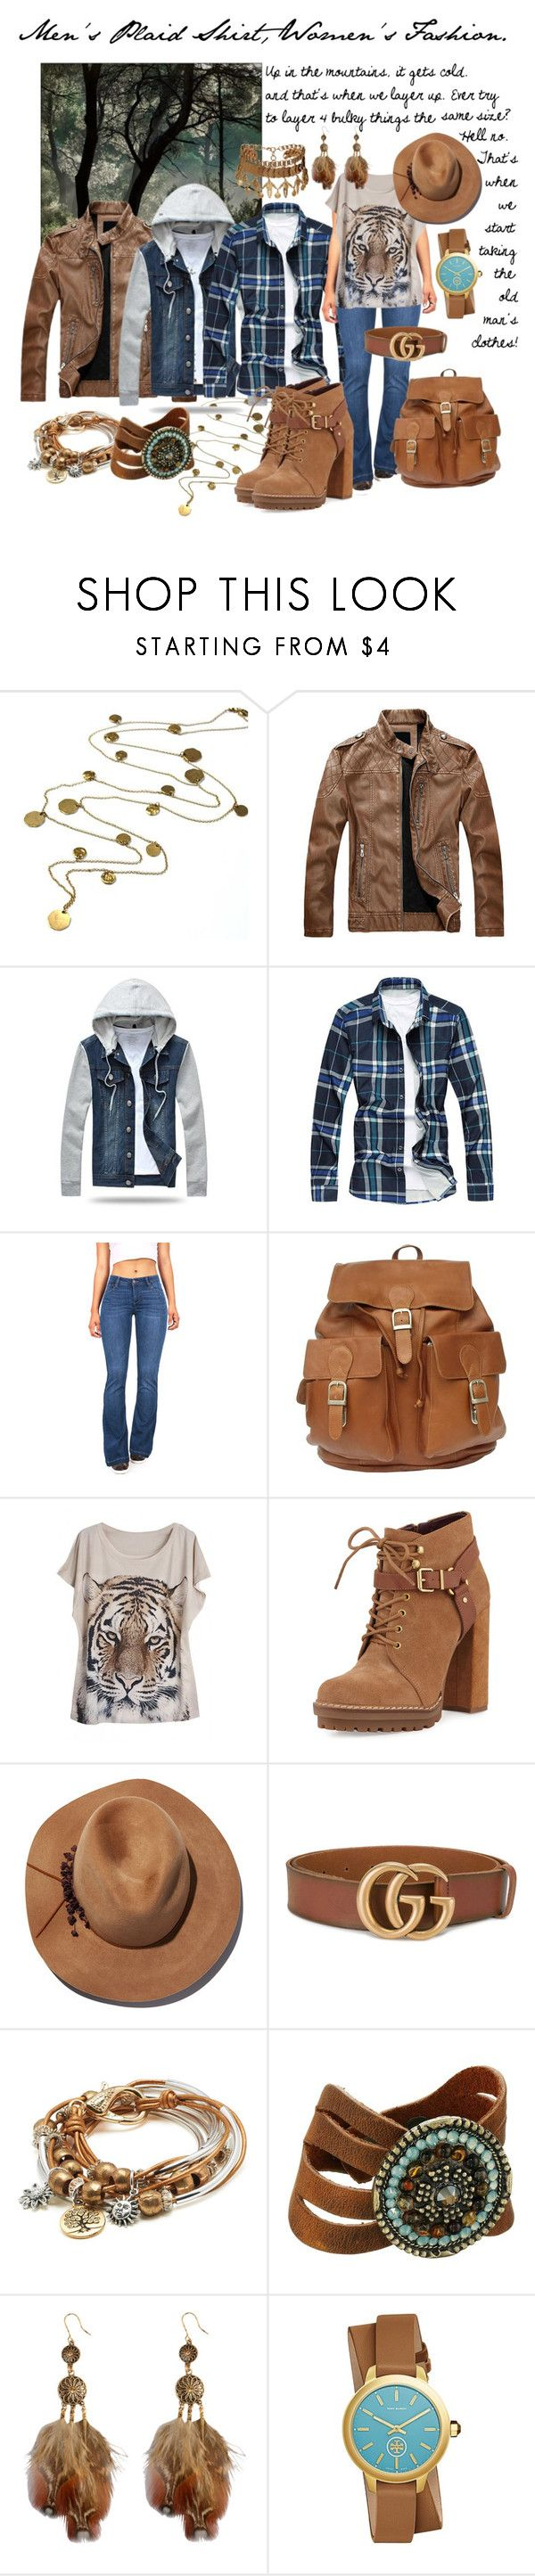 """""""men's plaid shirt, women's fashion"""" by caroline-buster-brown ❤ liked on Polyvore featuring Boutique by Jamie, Celebrity Pink, Piel Leather, WithChic, BCBGeneration, Eugenia Kim, Gucci, Lizzy James, Leatherock and Tory Burch"""